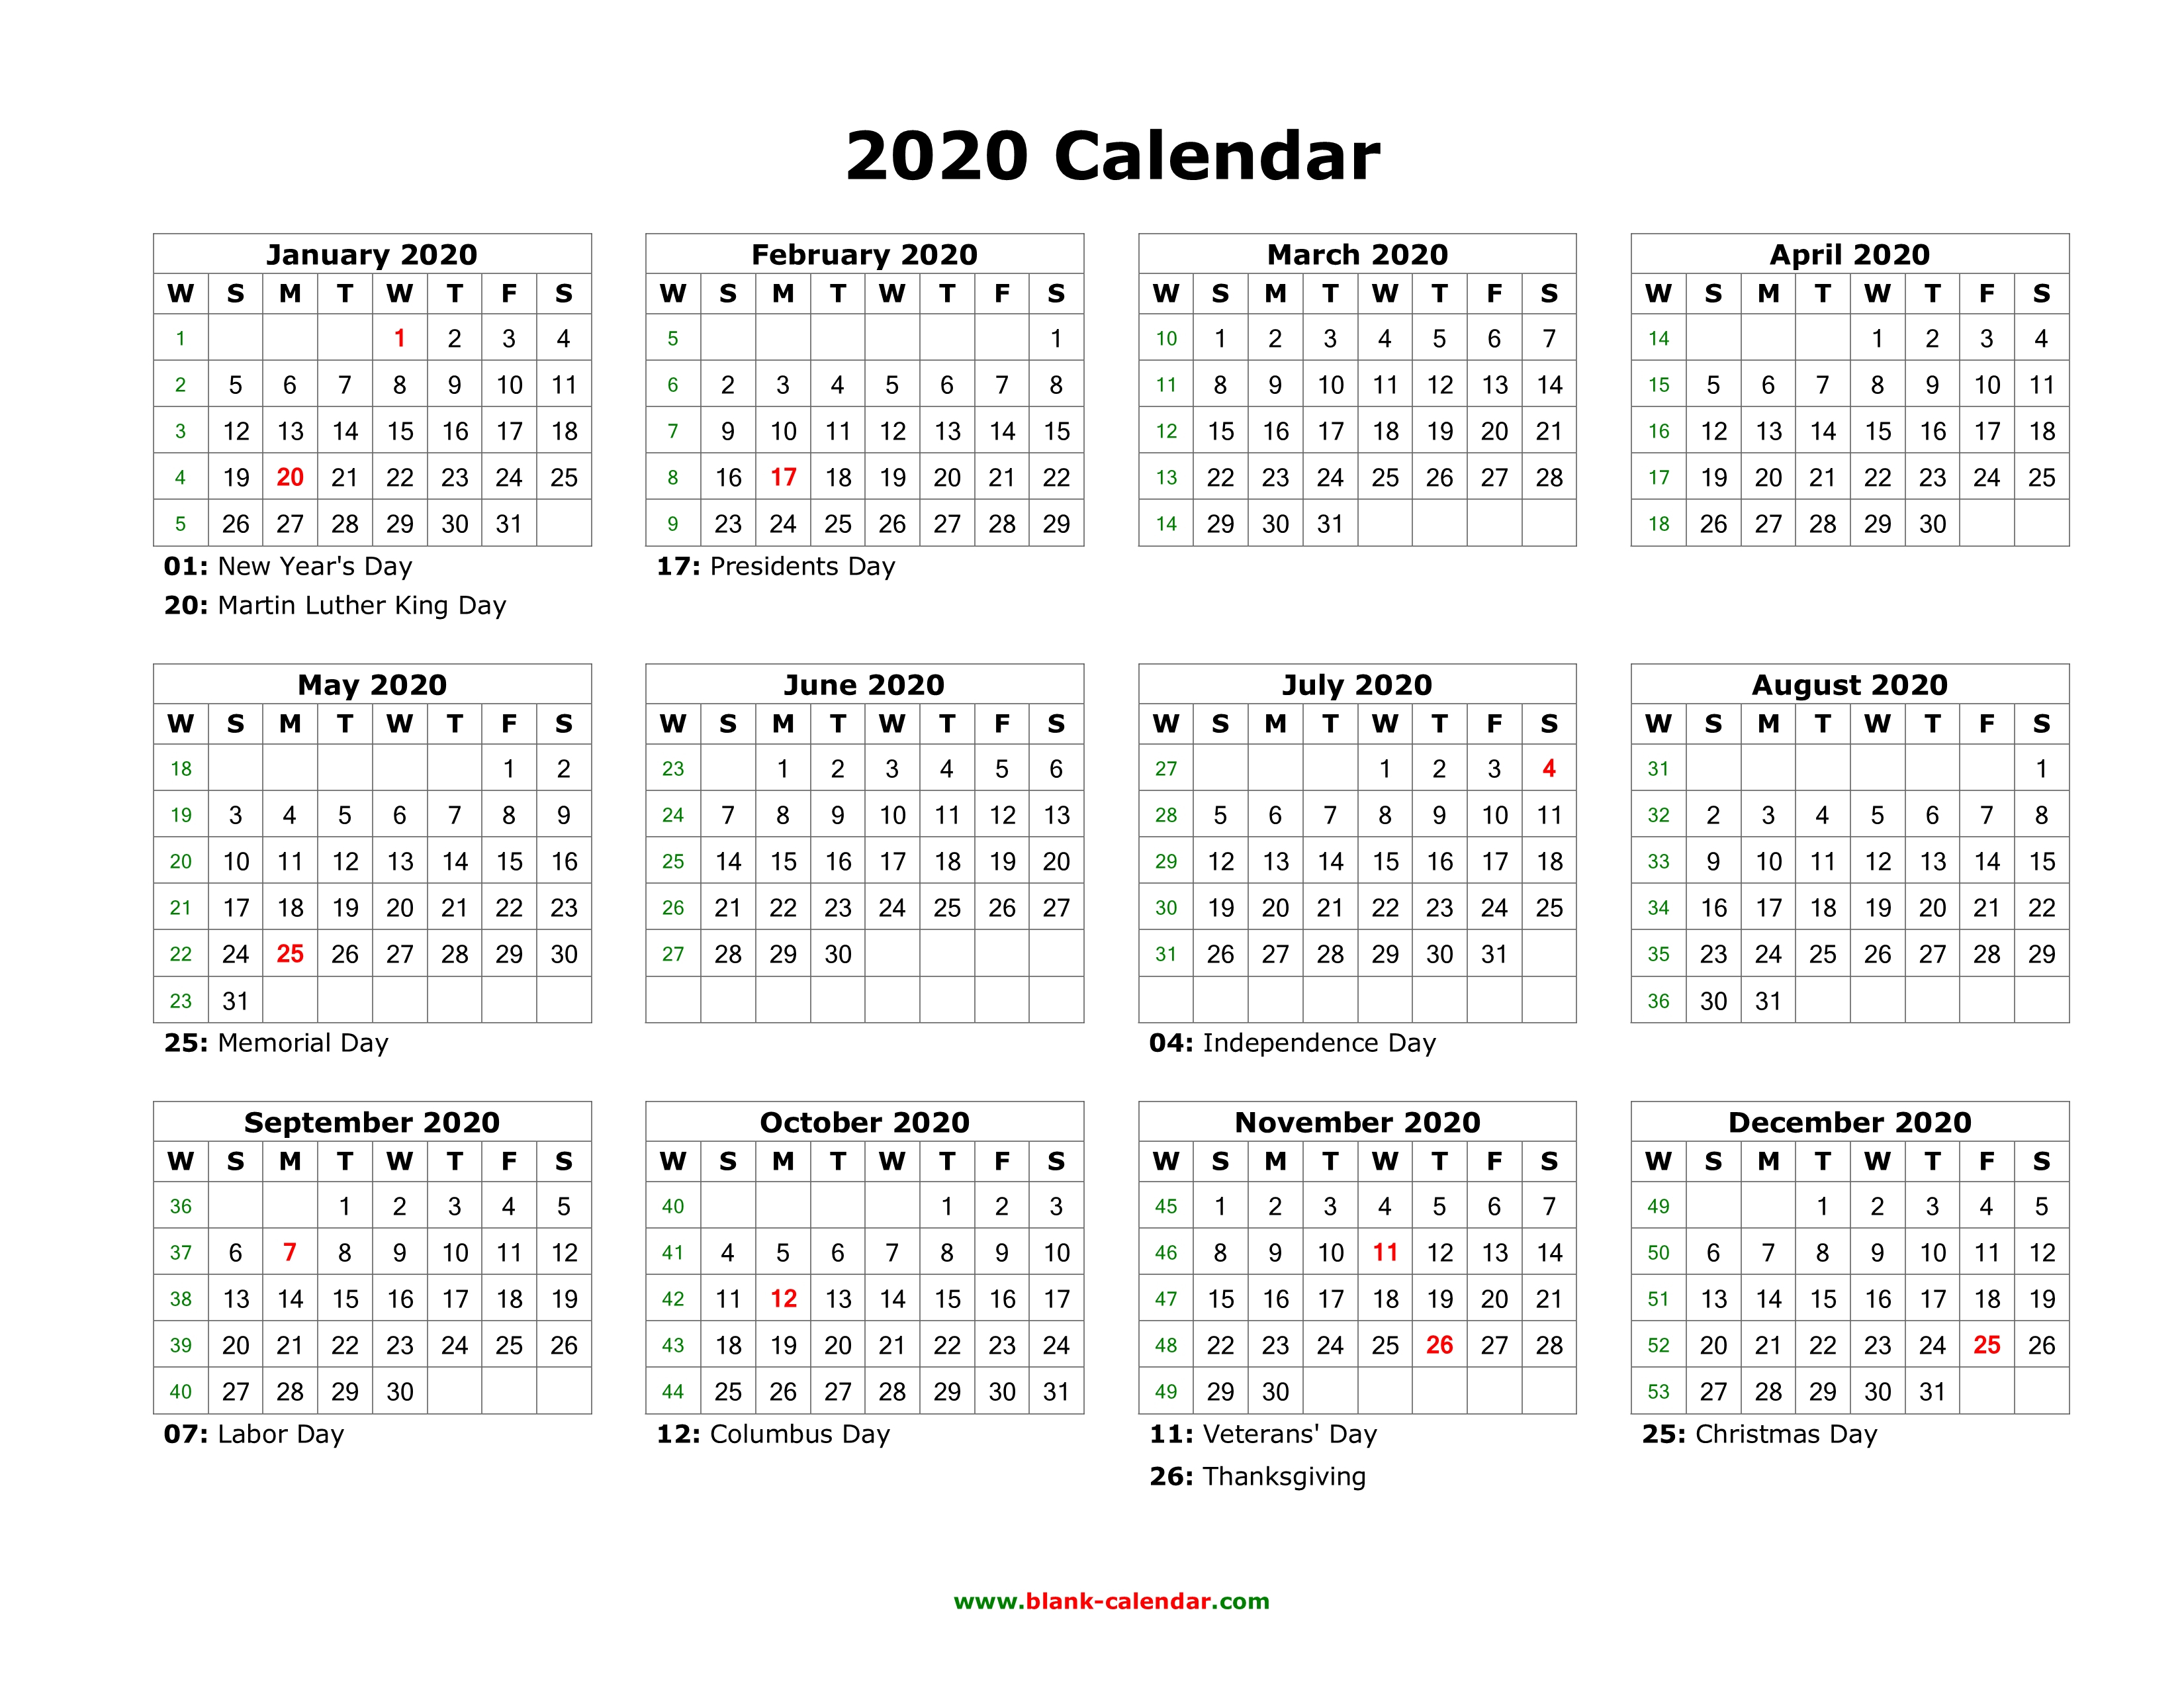 Blank Calendar 2020 | Free Download Calendar Templates with regard to Free Printable 2020 Calendar To I Can Edit